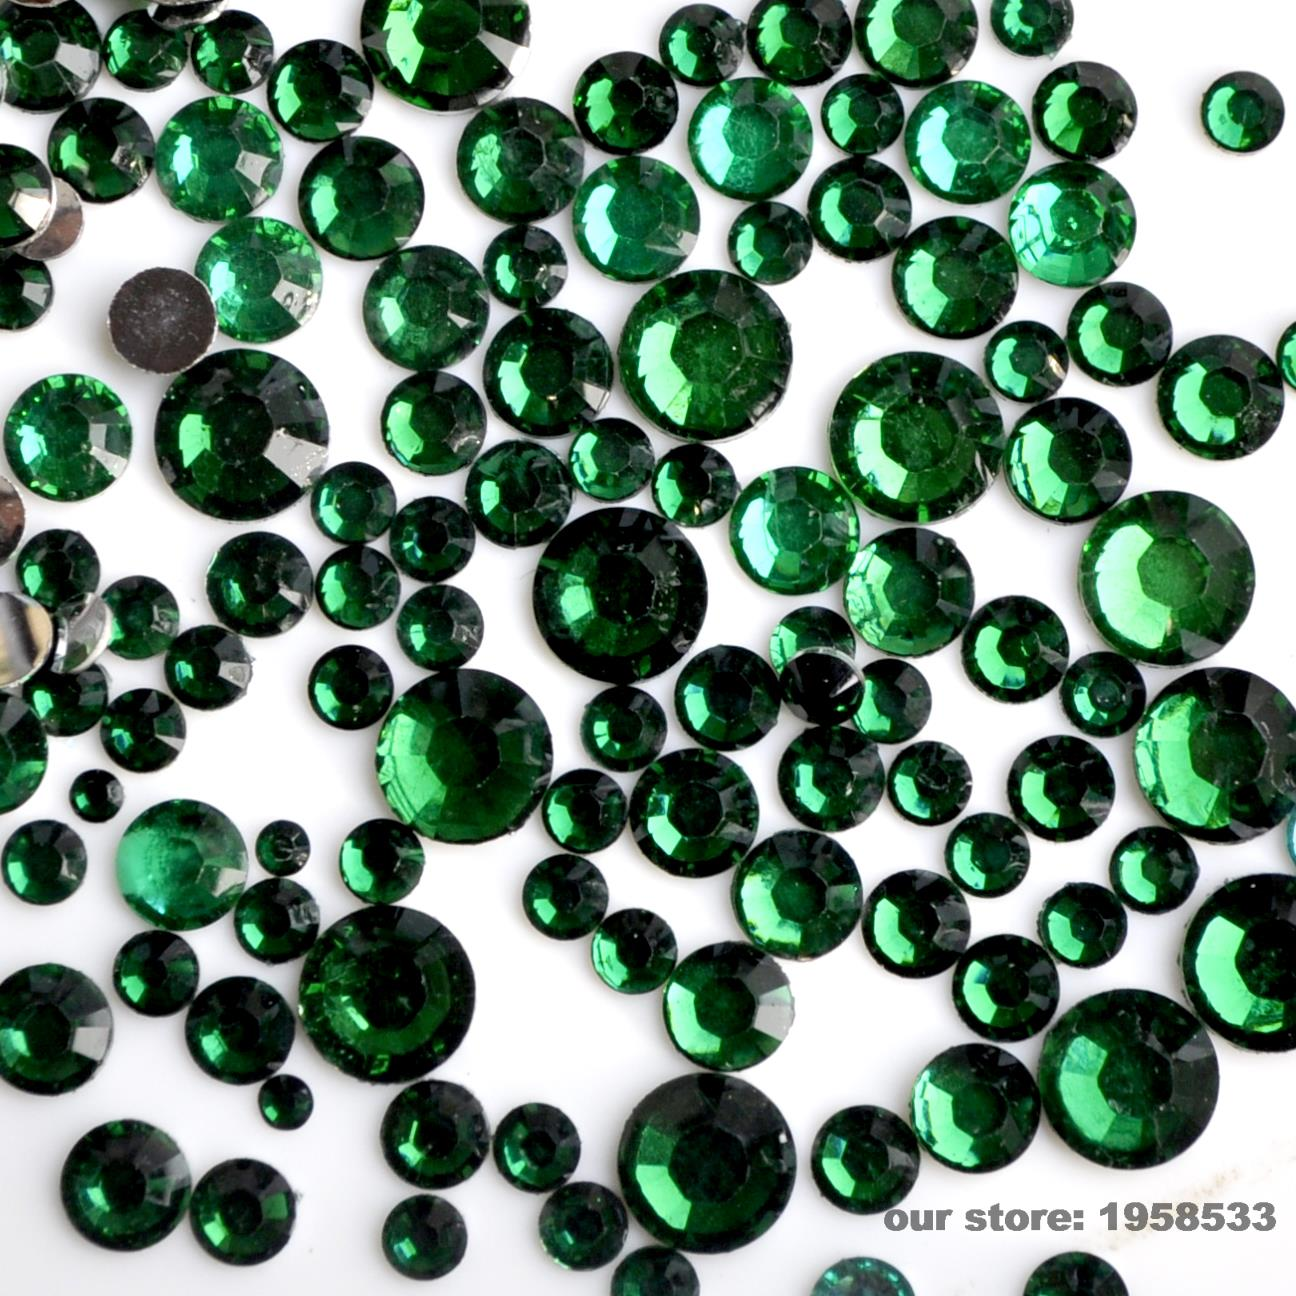 Mix Size 2mm - 6mm 400pcs/Bag Dark Green Resin Nail Art Glitter Rhinestone Nails Tools DIY Decoration N19